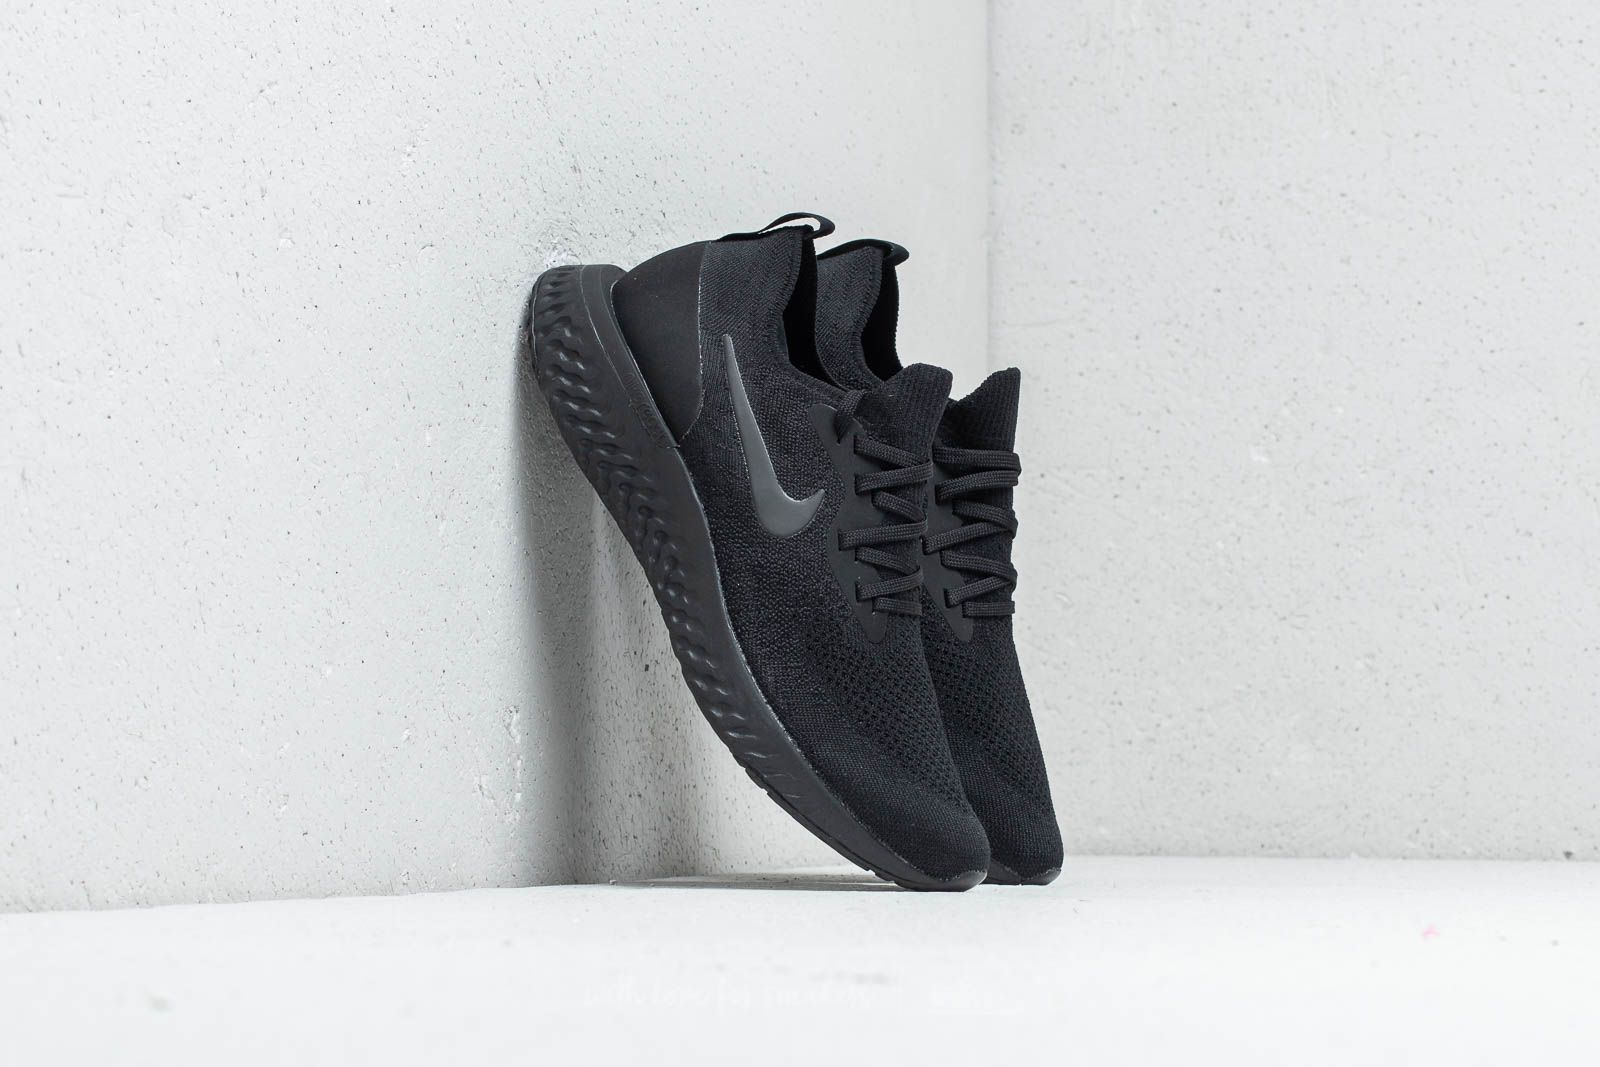 848a47d723f Nike Wmns Epic React Flyknit Black  Black-Black at a great price 147 €